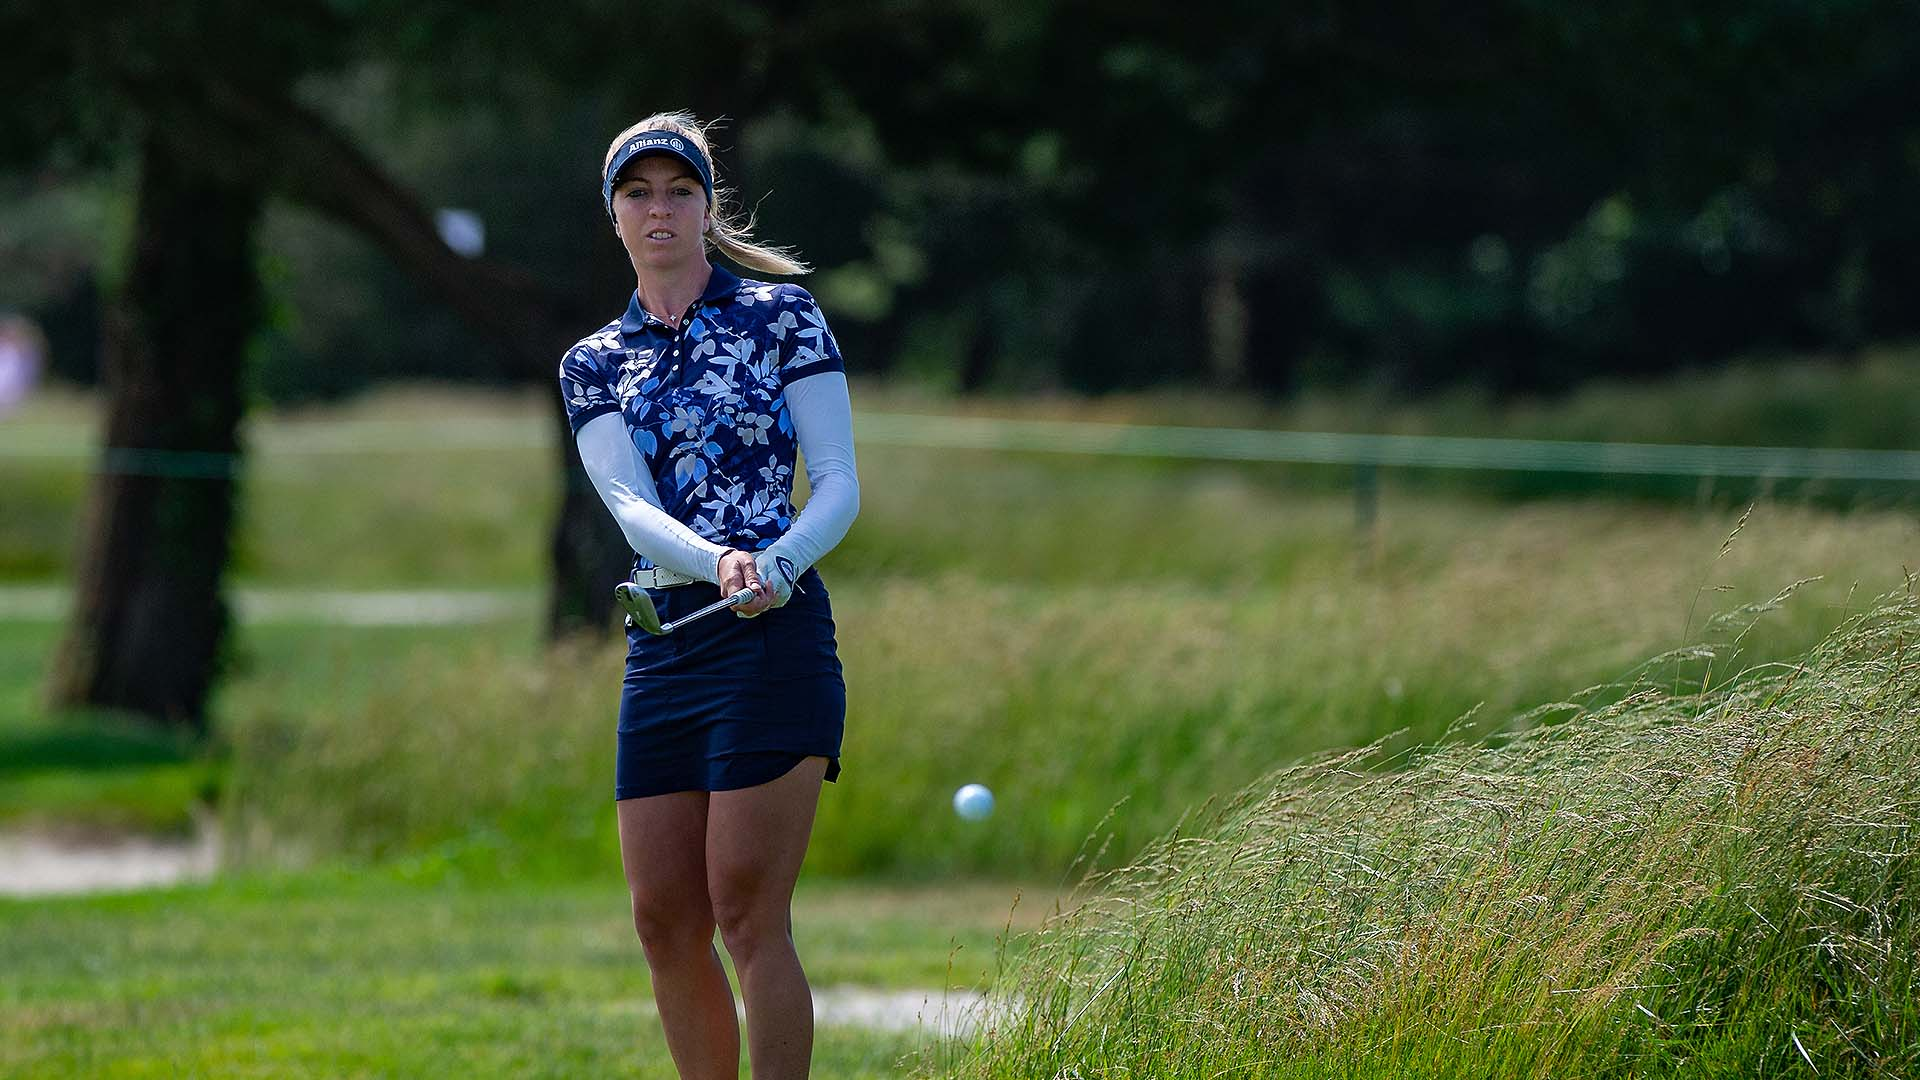 Lpga Money List 2020.Big Sunday Could Bring Lpga Promotions At Symetra Tour